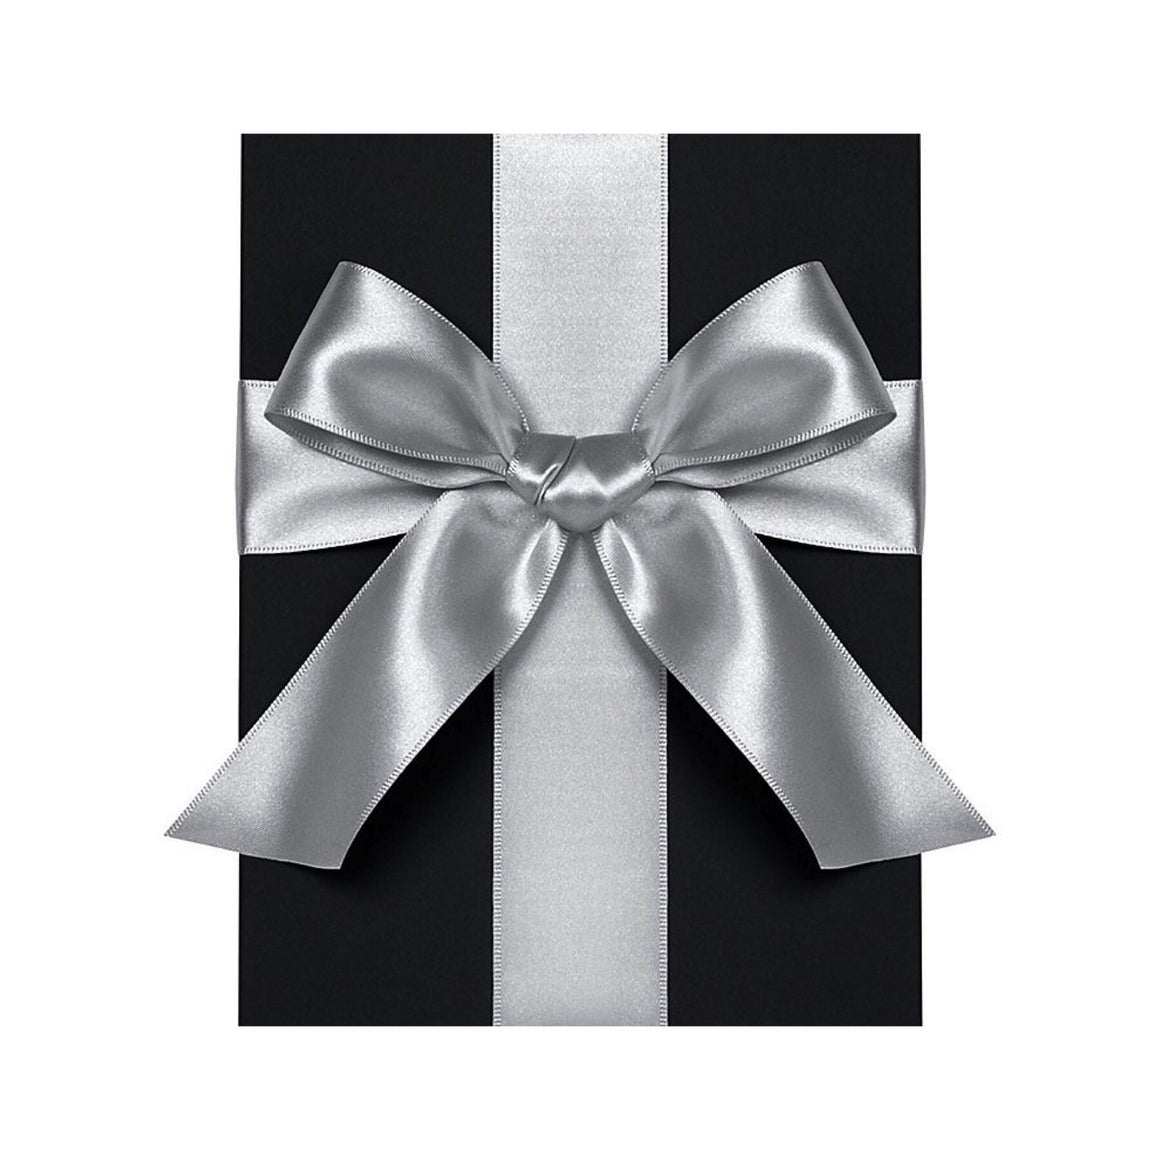 "GIFT GIVING - RIBBON 1/4"" SILVER, RIBBON, WASTE NOT PAPER - Bon + Co. Party Studio"